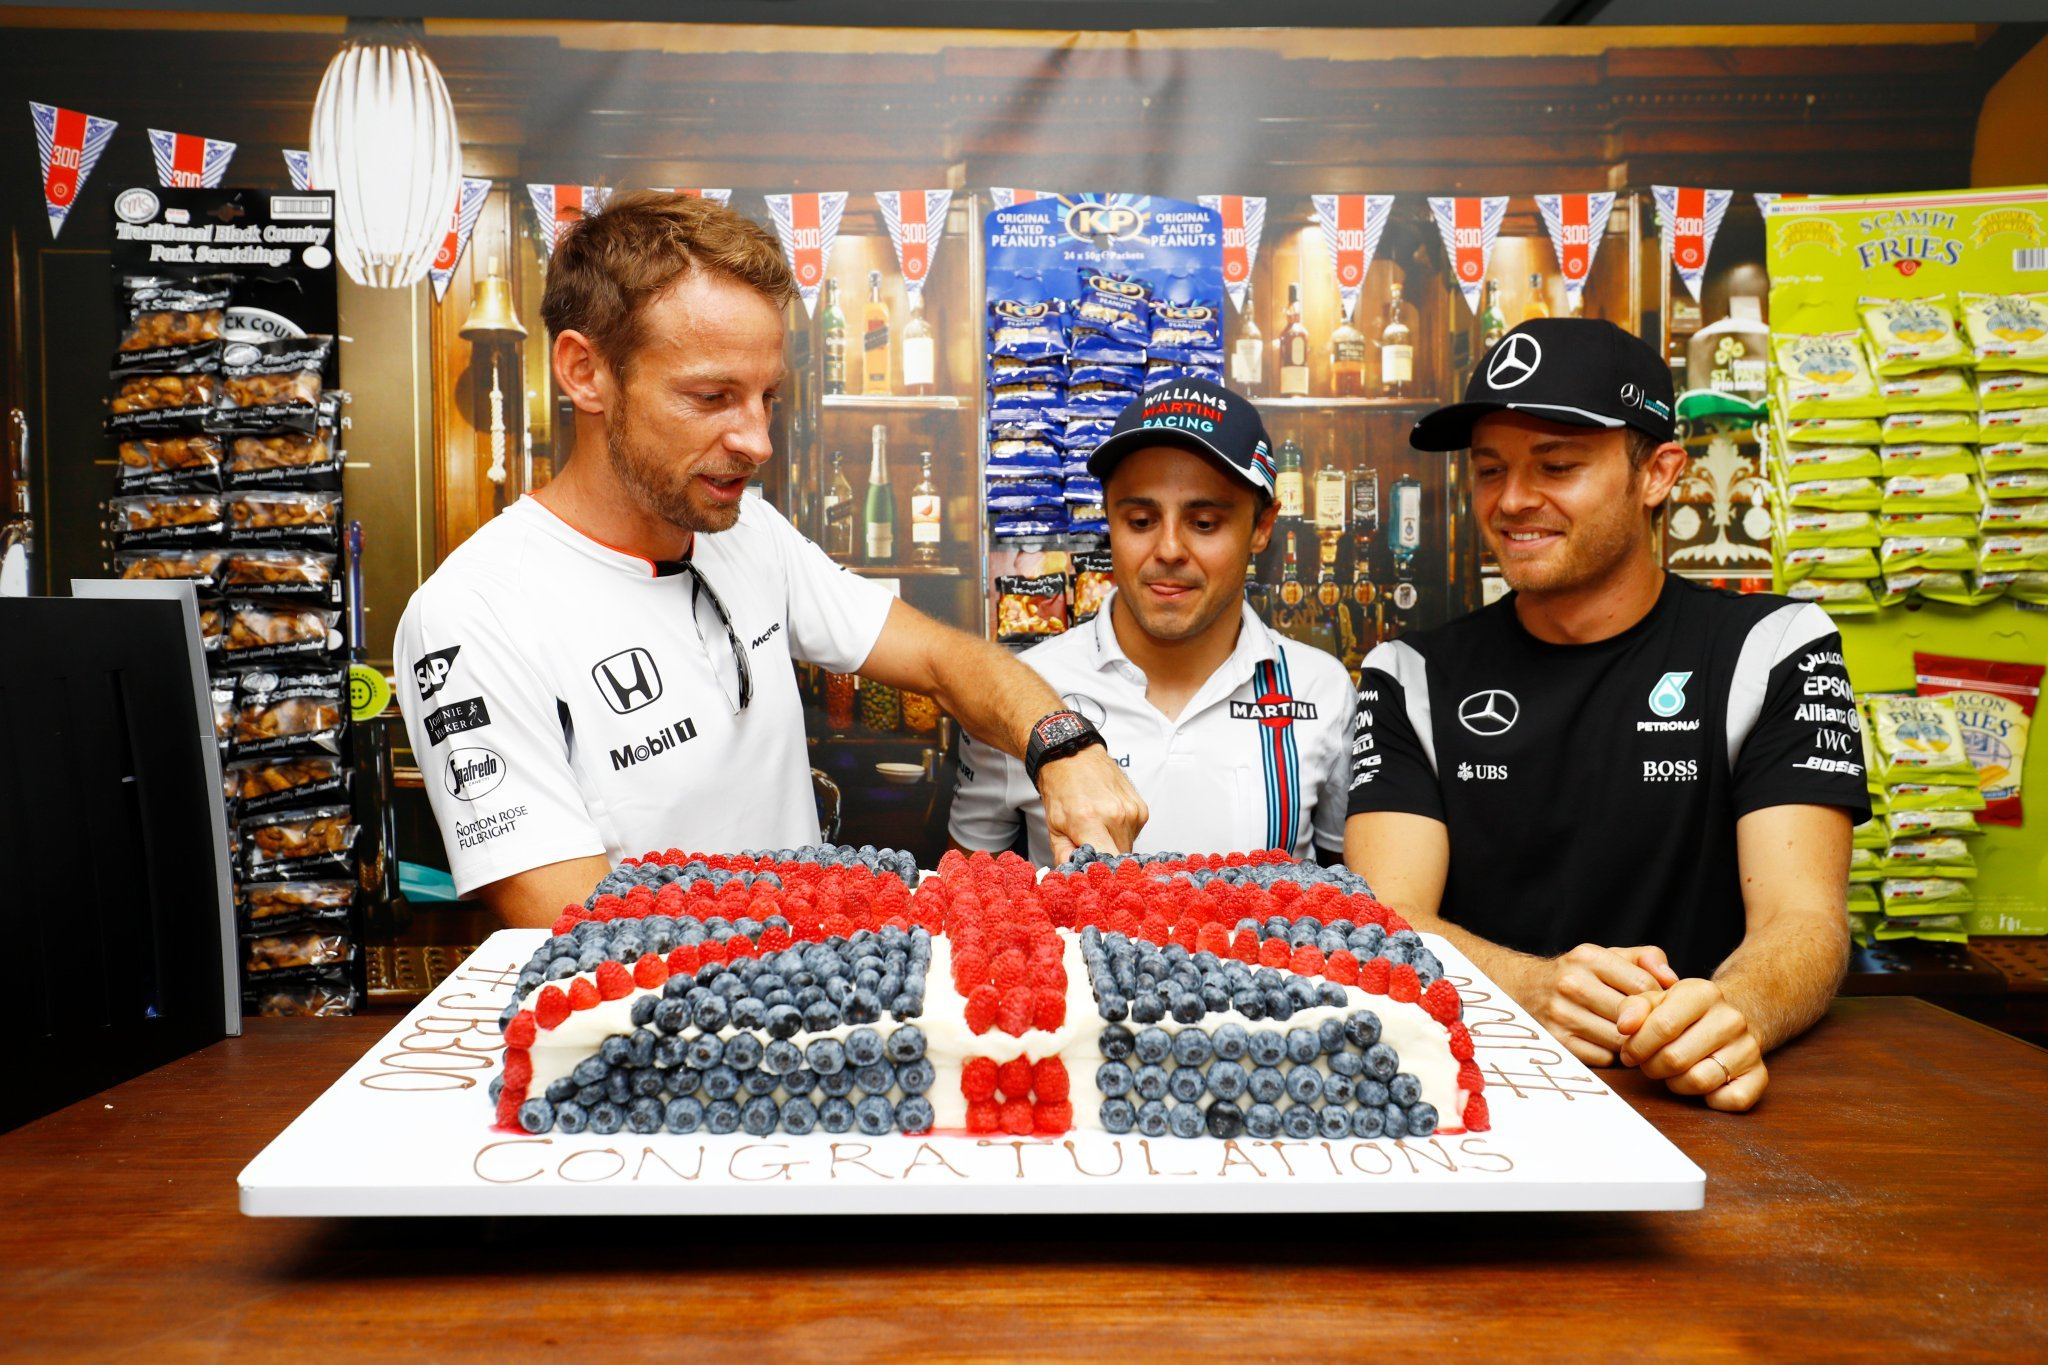 CyrdLh WIAEPHBA 1 - #F1 won't be the same without these three guys.